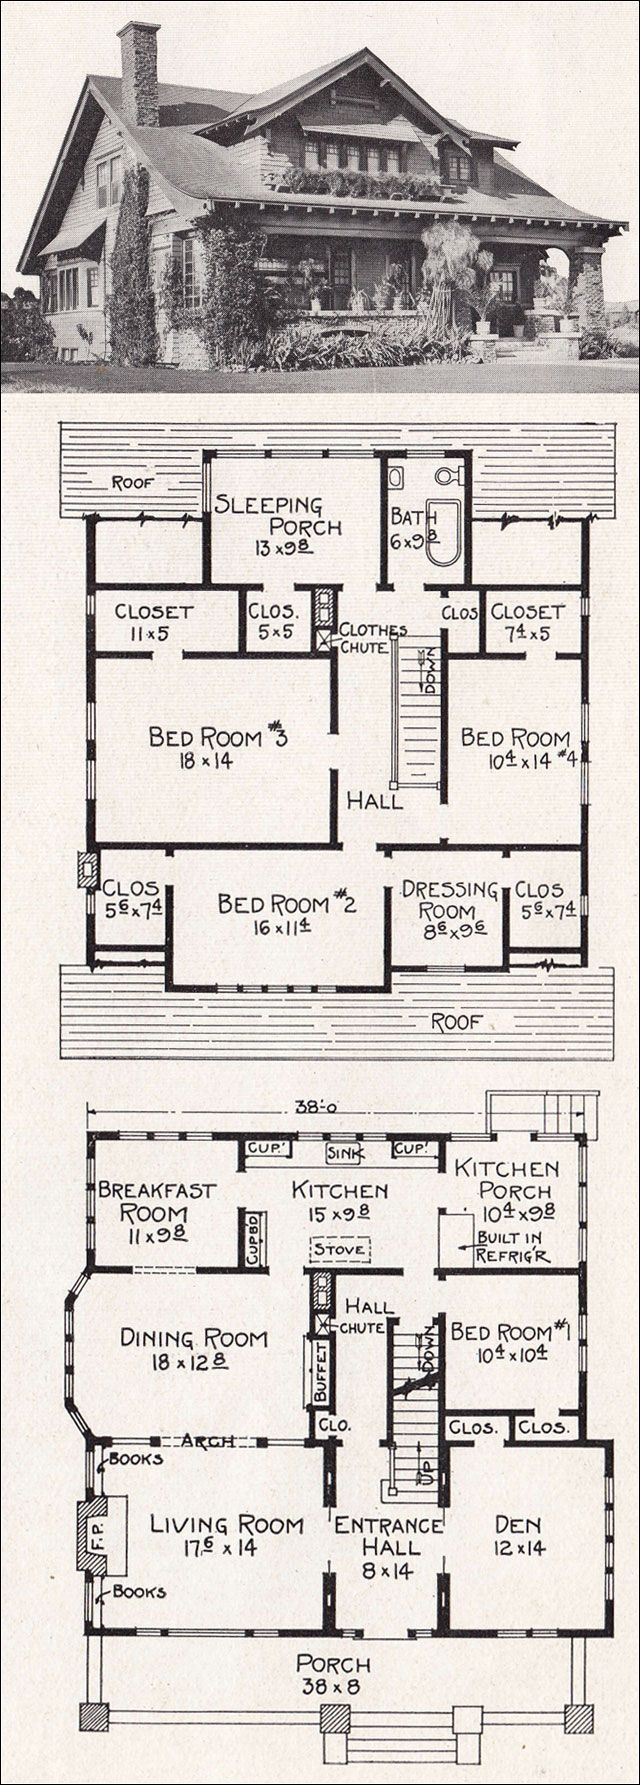 Case study western massachusetts bungalow kdz designs interior - 1918 Bungalow Plan No R88 By E W Stillwel Sleeping Porches Became Popular In The